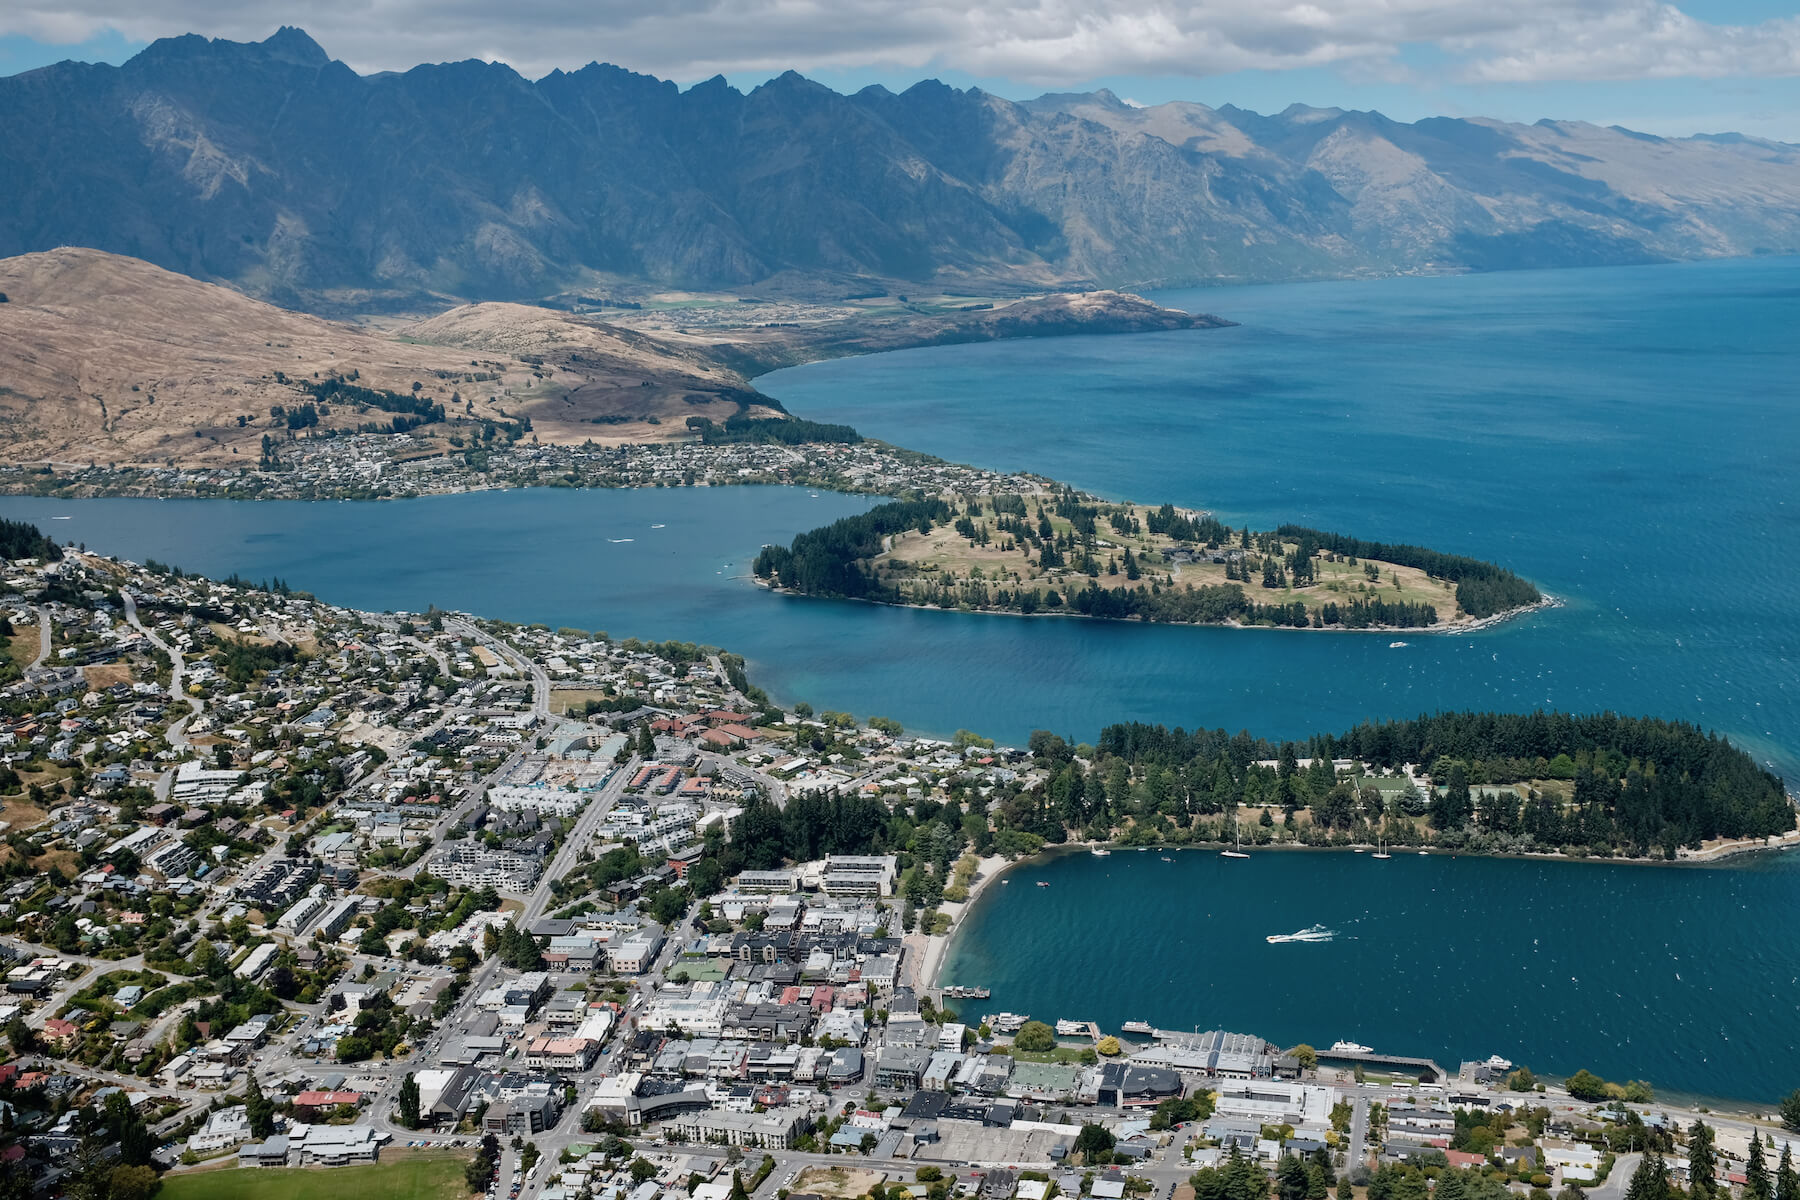 View of Queenstown from the top.